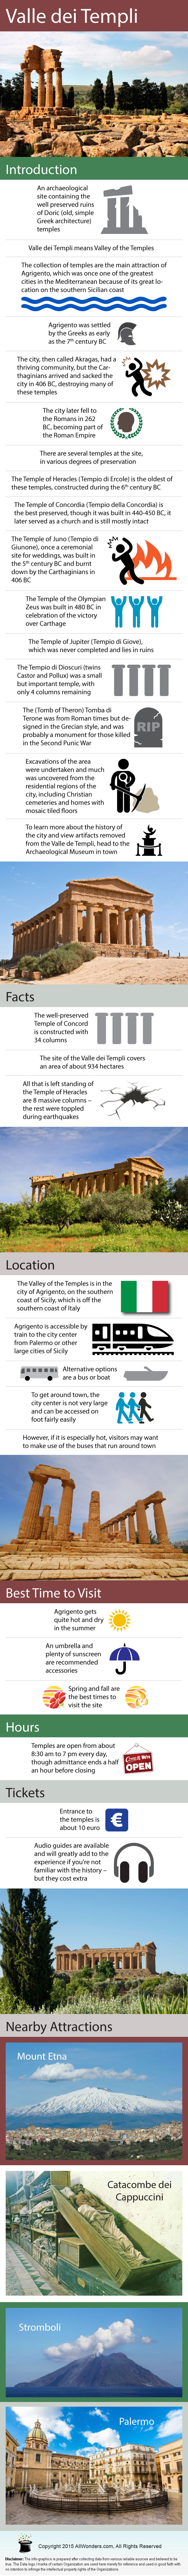 Valle dei Templi - Facts & Infographic